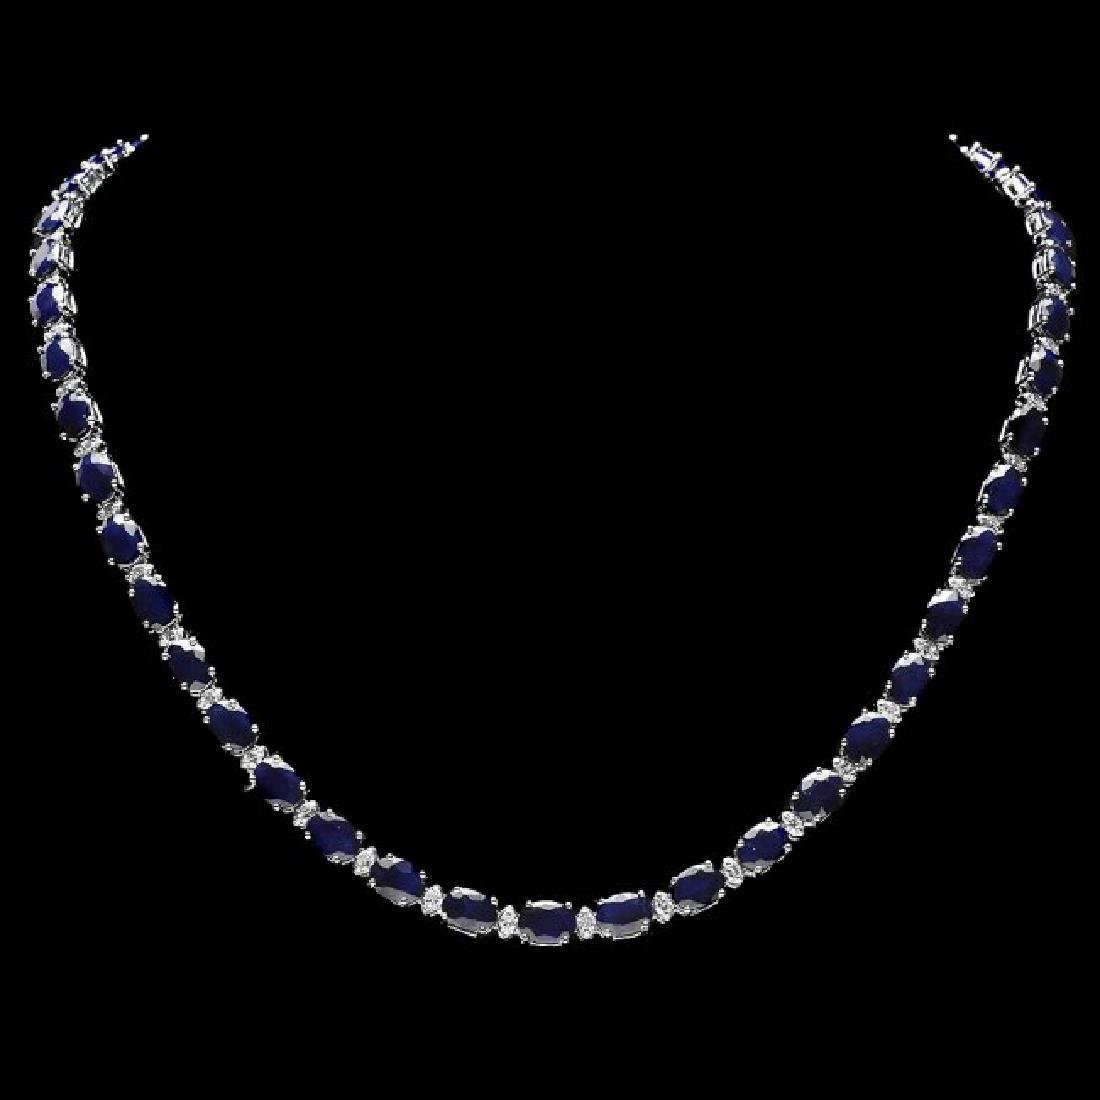 14k Gold 40ct Sapphire 2.00ct Diamond Necklace